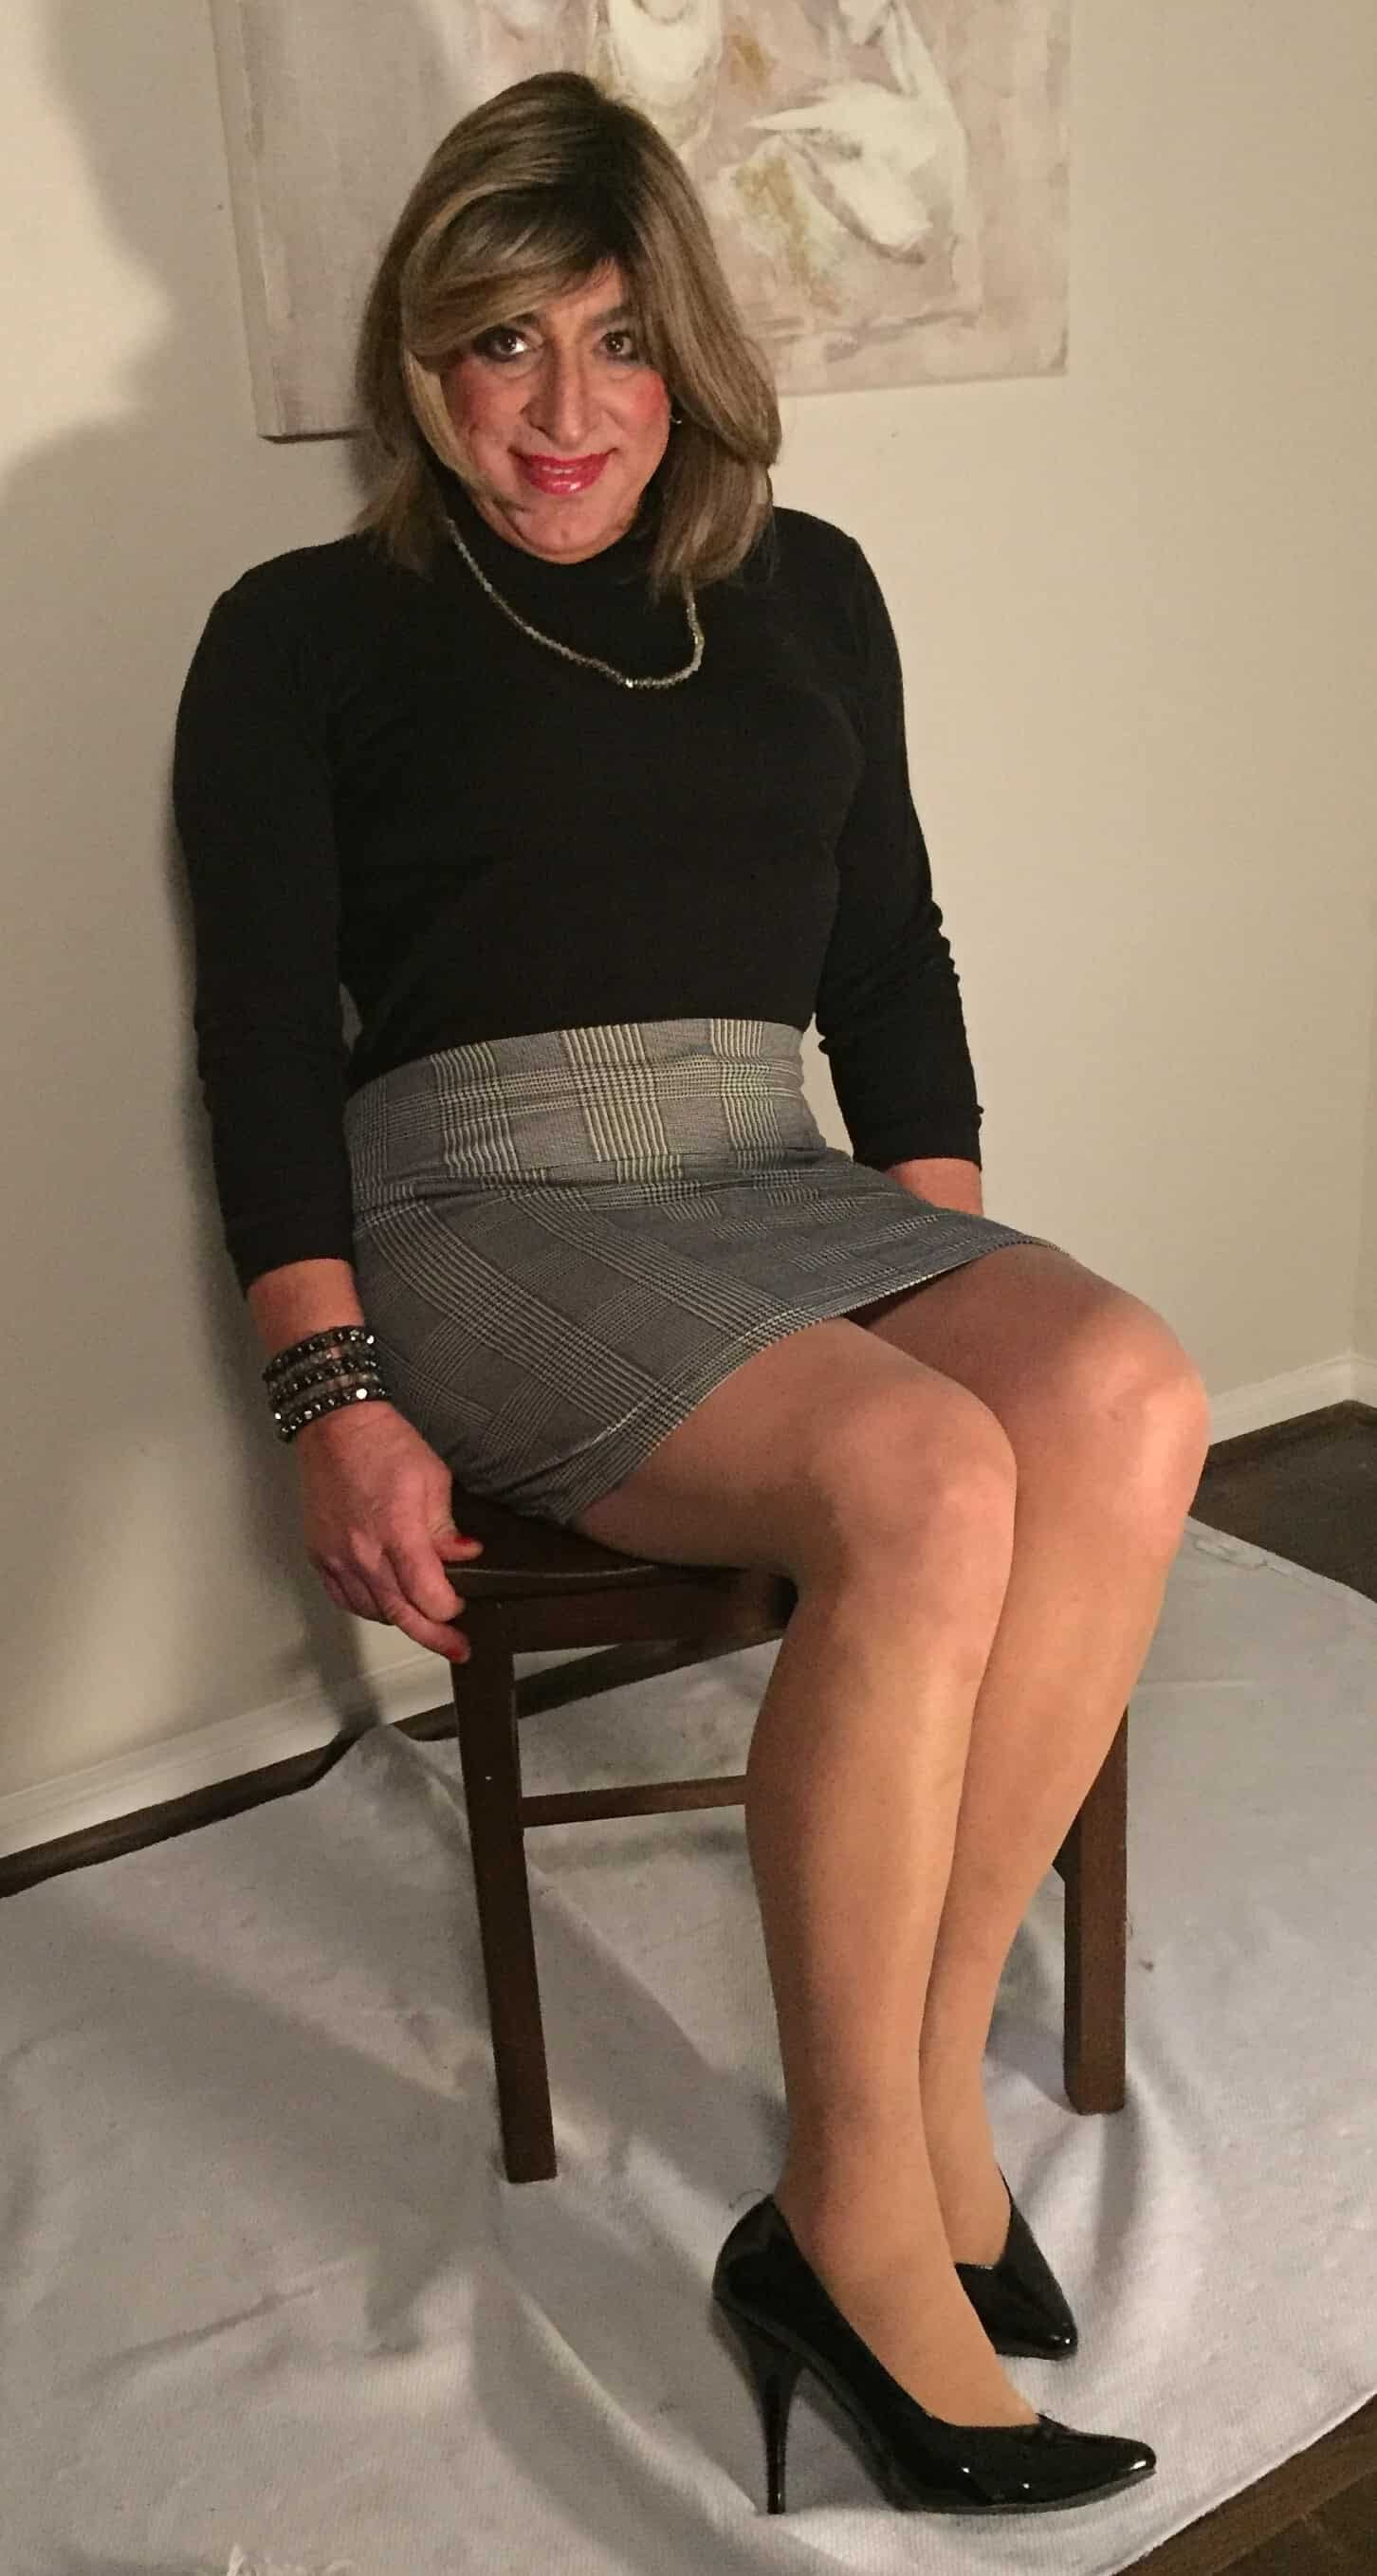 Stretch Lace Top, Nude Shear Hose, and Nude Heels